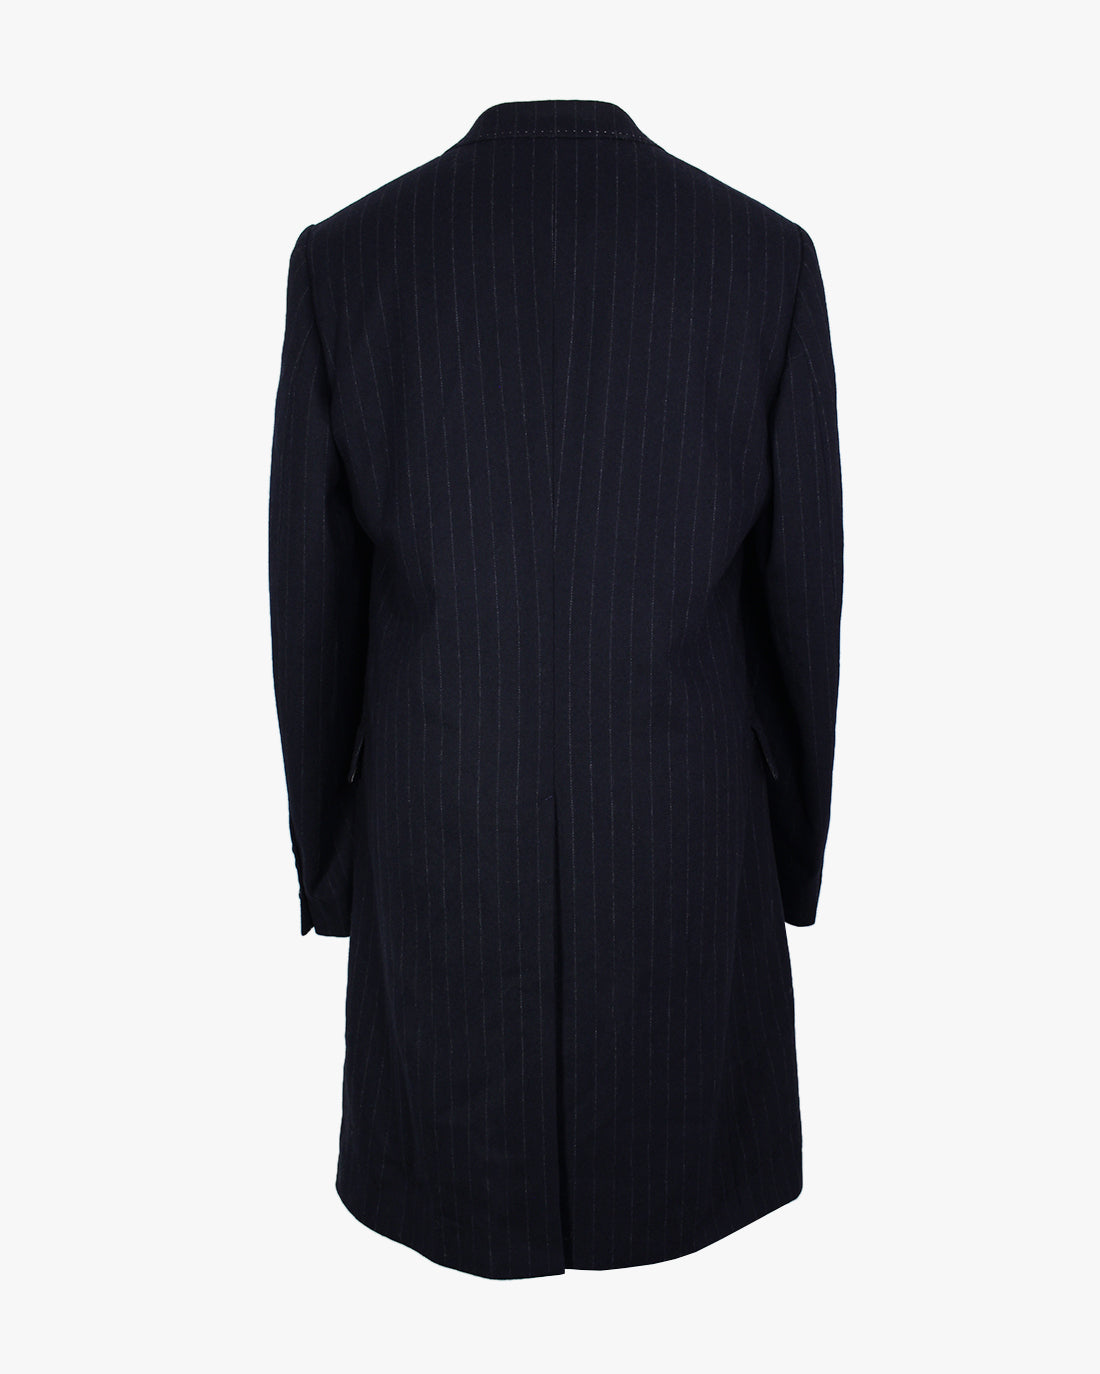 Navy pinstripe Double Breasted Overcoat